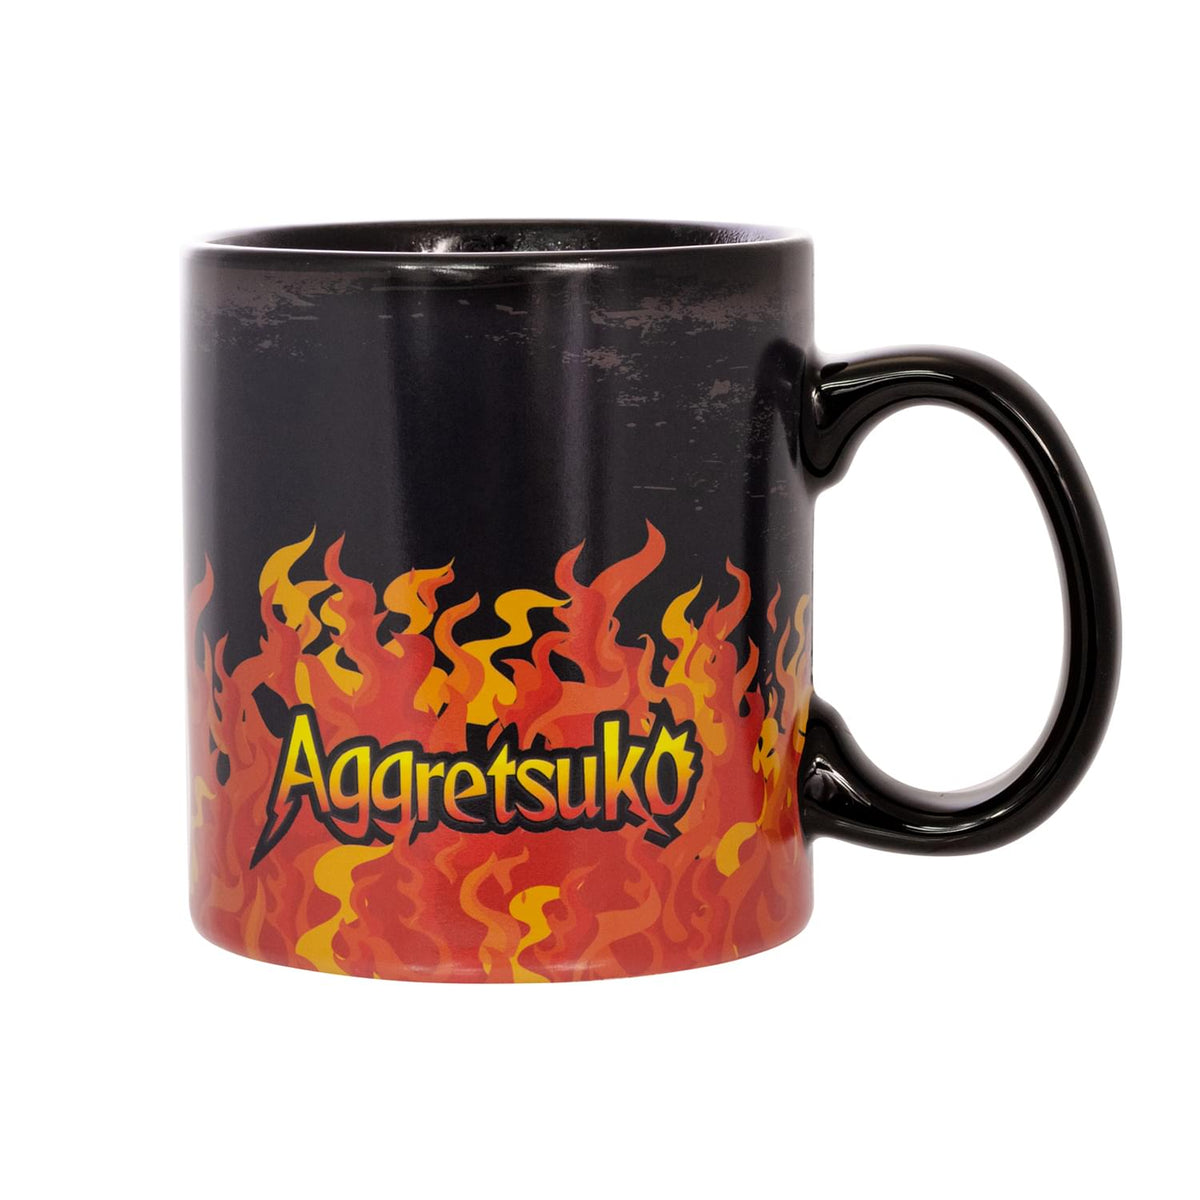 Aggretsuko Heat Reveal Fire & Skulls 20oz Ceramic Coffee Mug